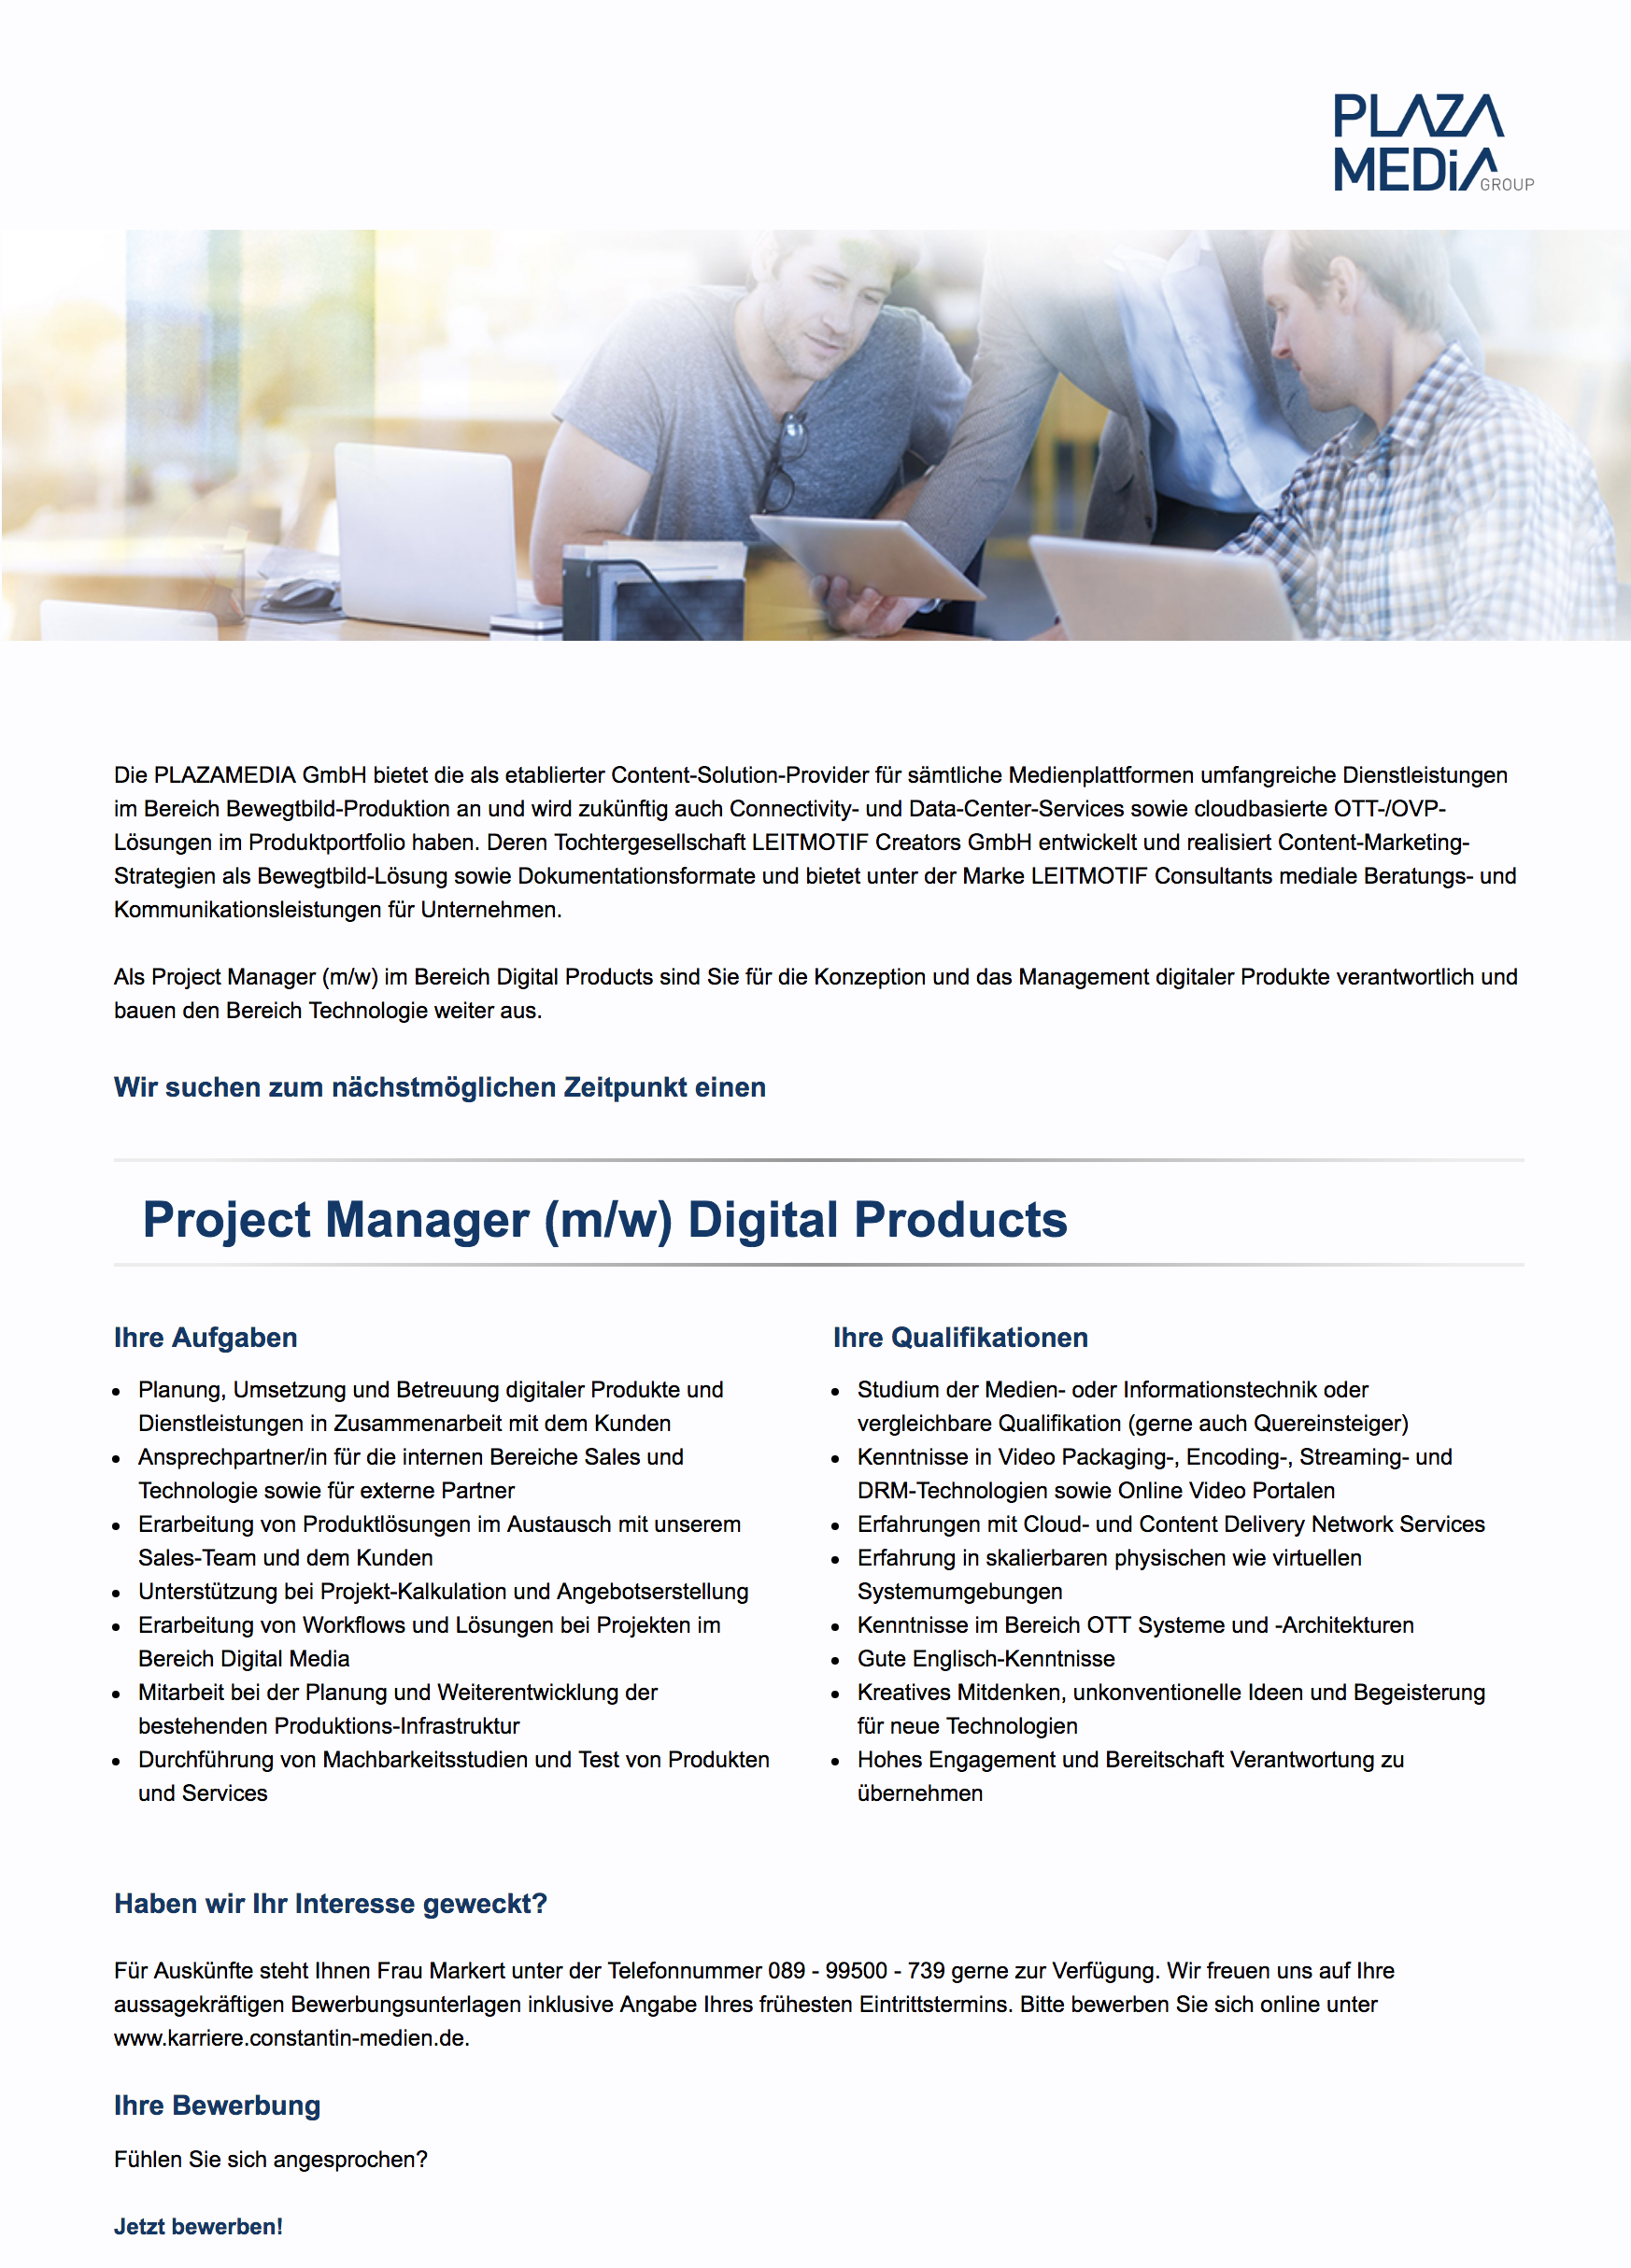 Project Manager (m/w) Digital Products